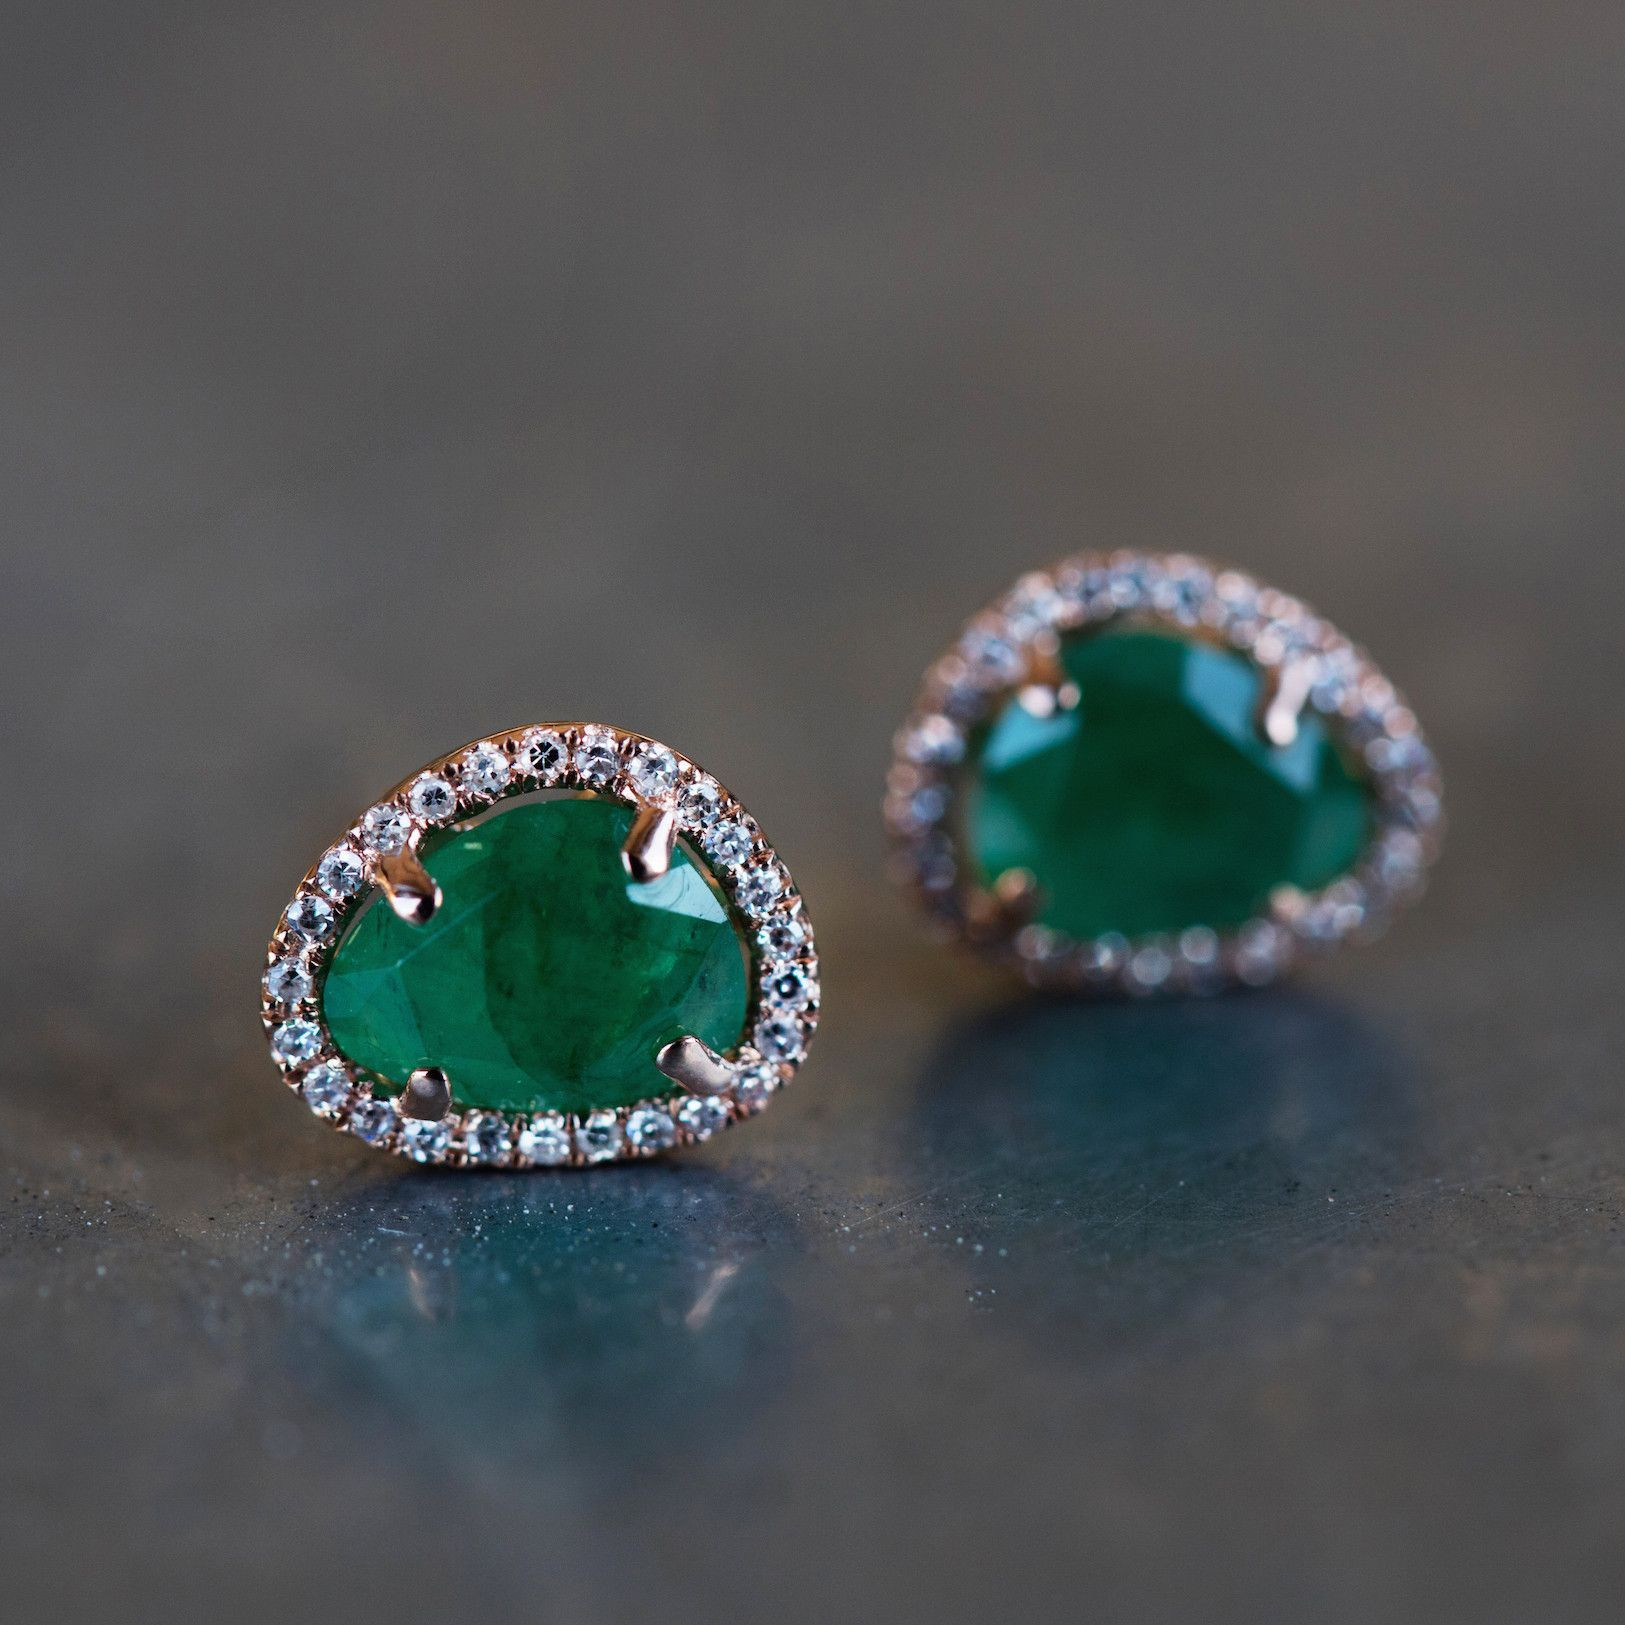 14kt gold and diamond free form emerald studs total diamond weight